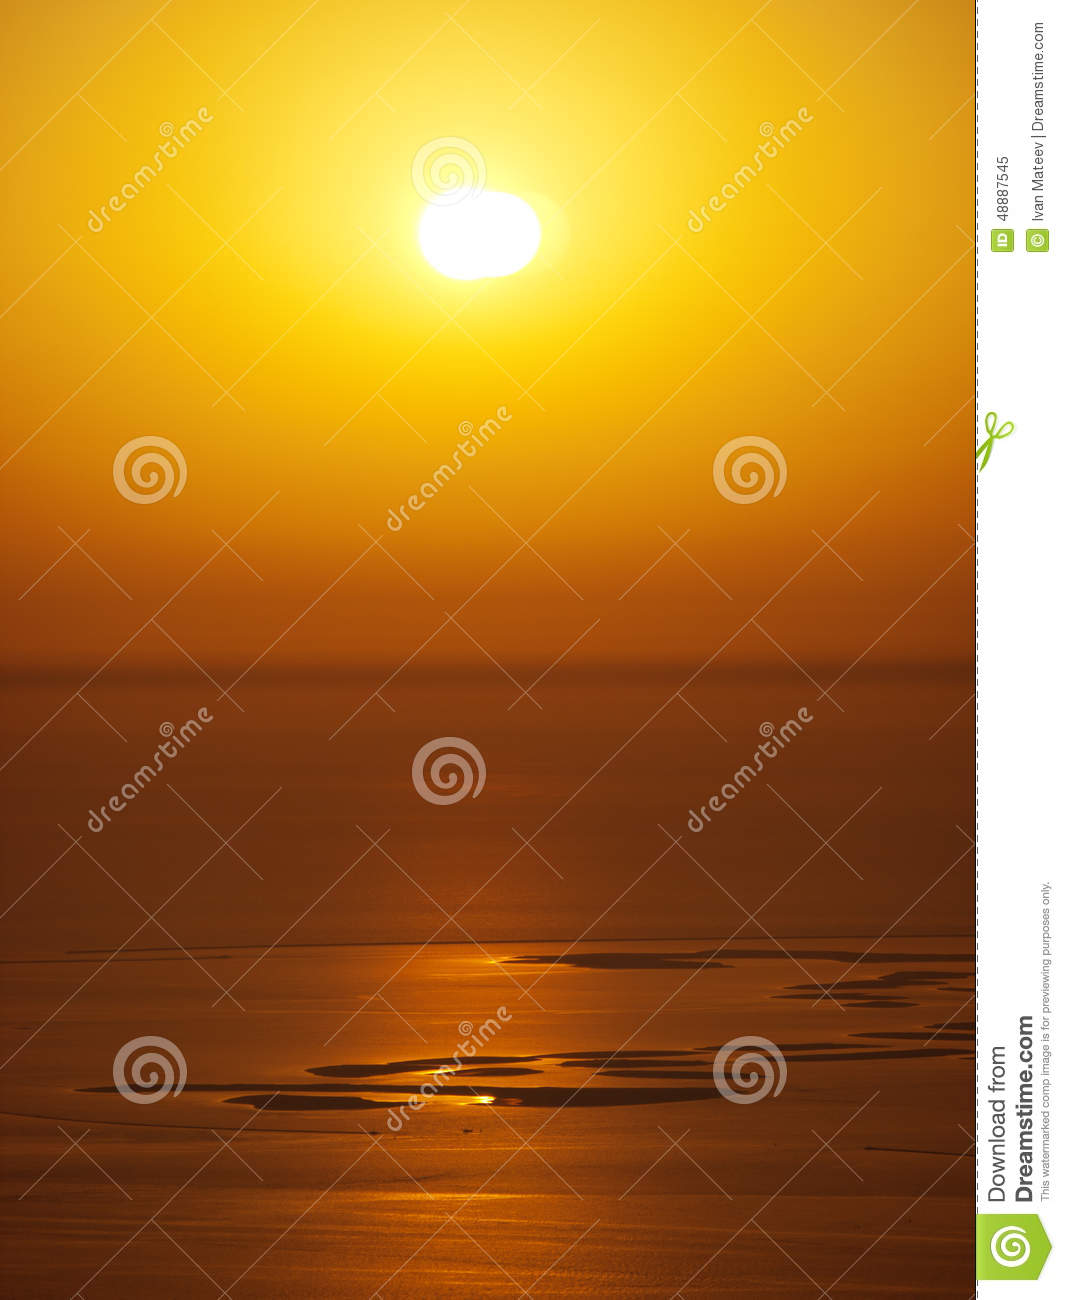 The world project dubai stock image image of holidays 48887545 the world or world islands is an artificial archipelago of various small islands constructed in the rough shape of a world map located near the coast of gumiabroncs Images